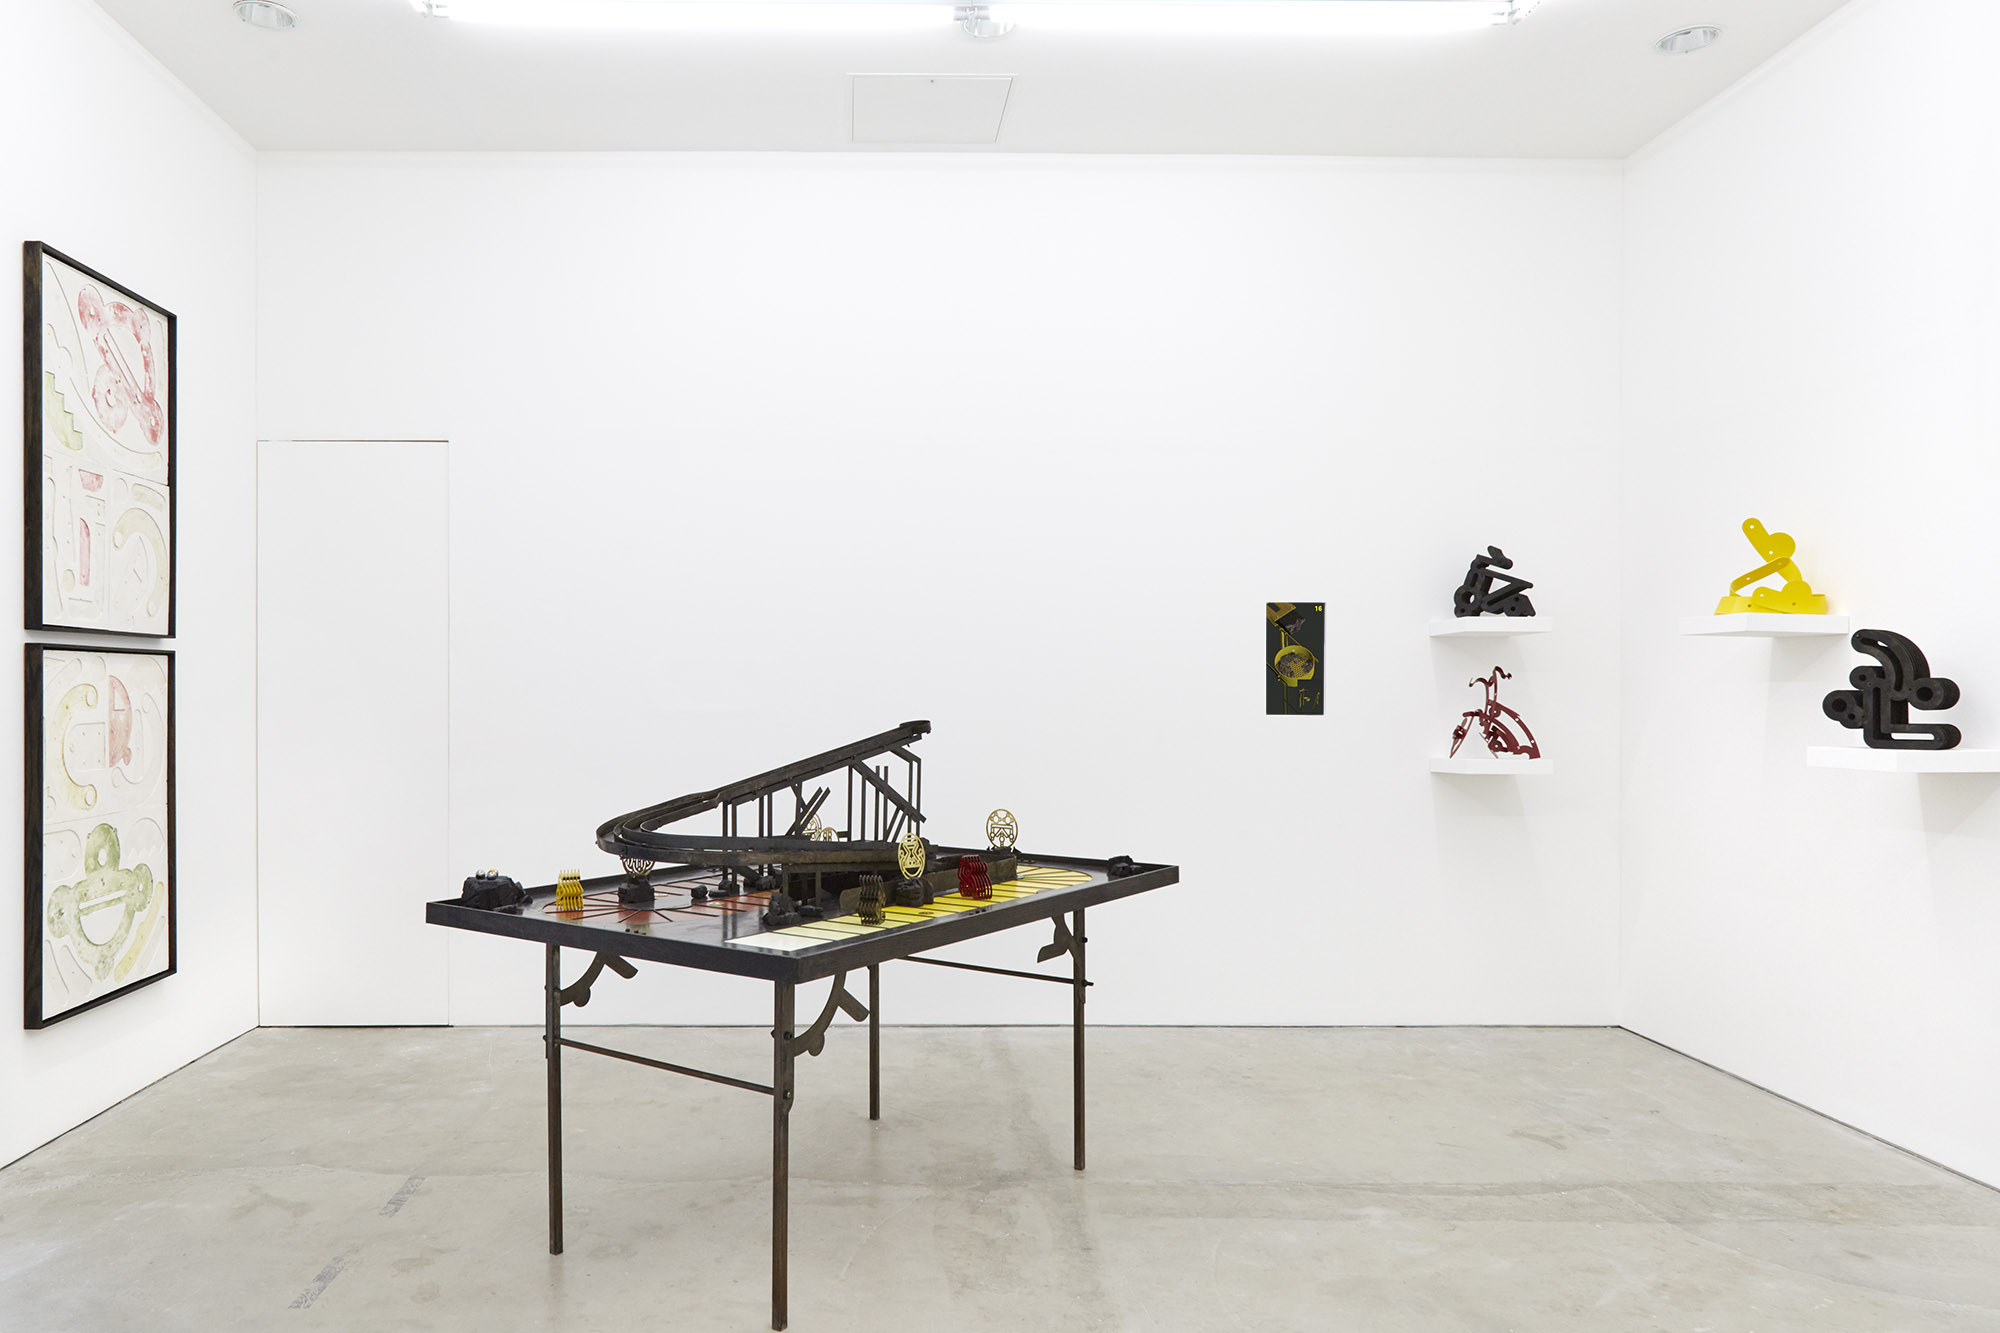 Jack West: Last Man Standing. 25 January - 2 March